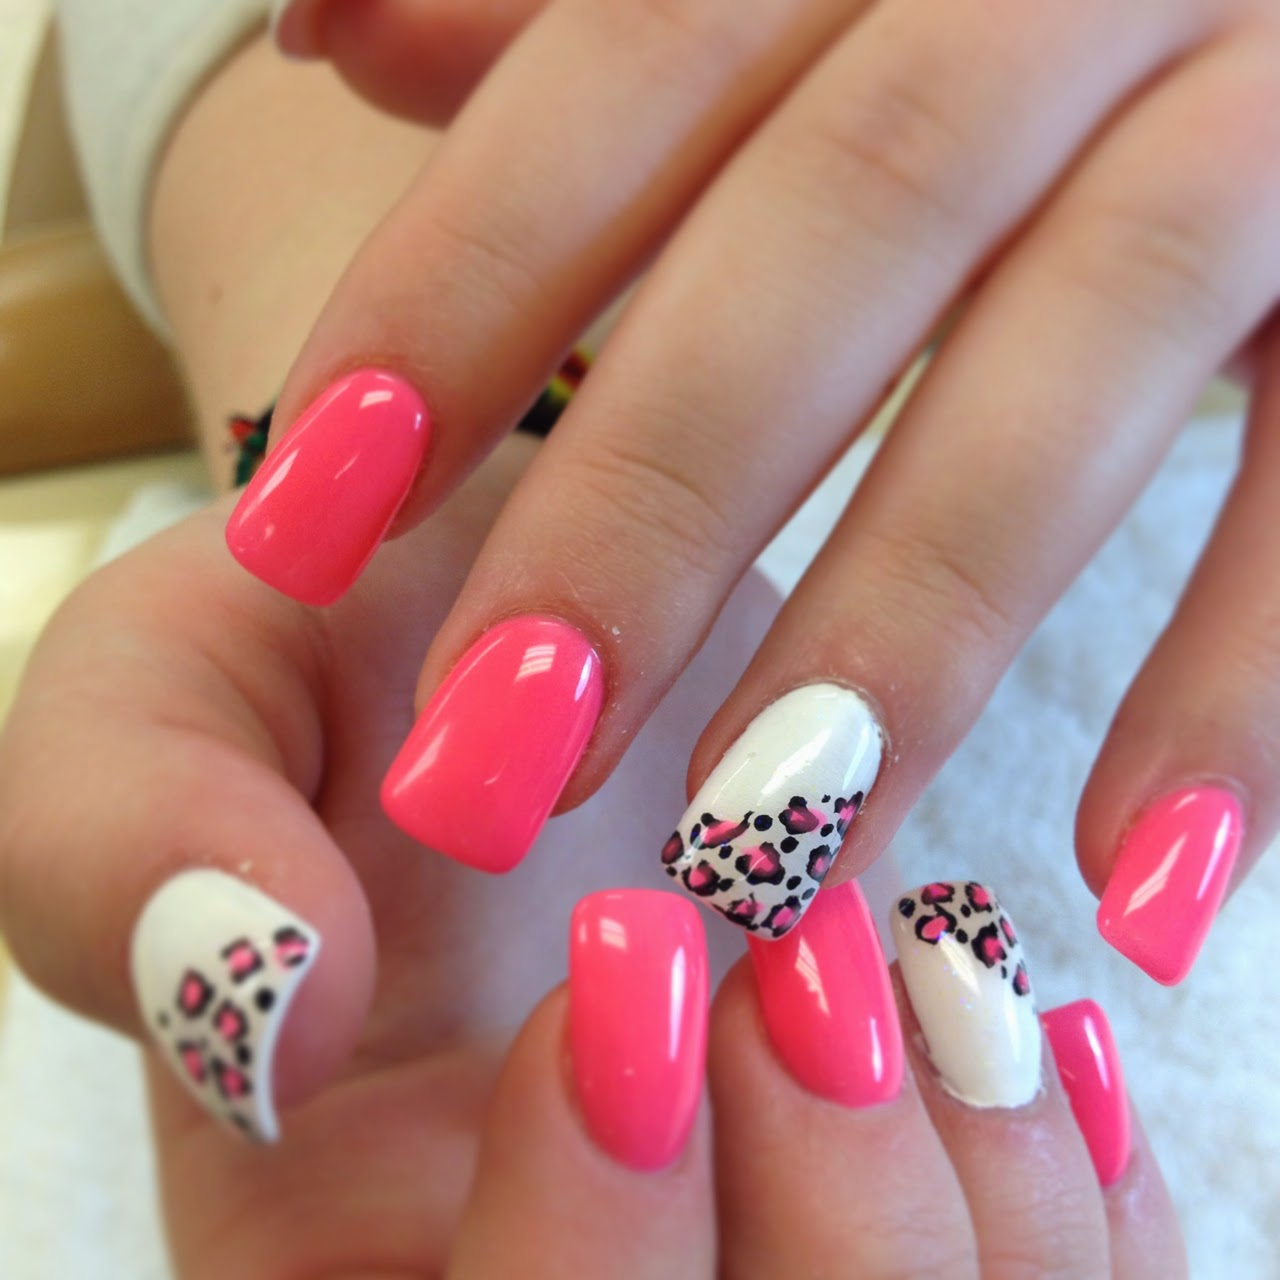 Nail salon designs nail designs simple easy salon spa artificial nail designs are the most basic type of nail designs prinsesfo Image collections